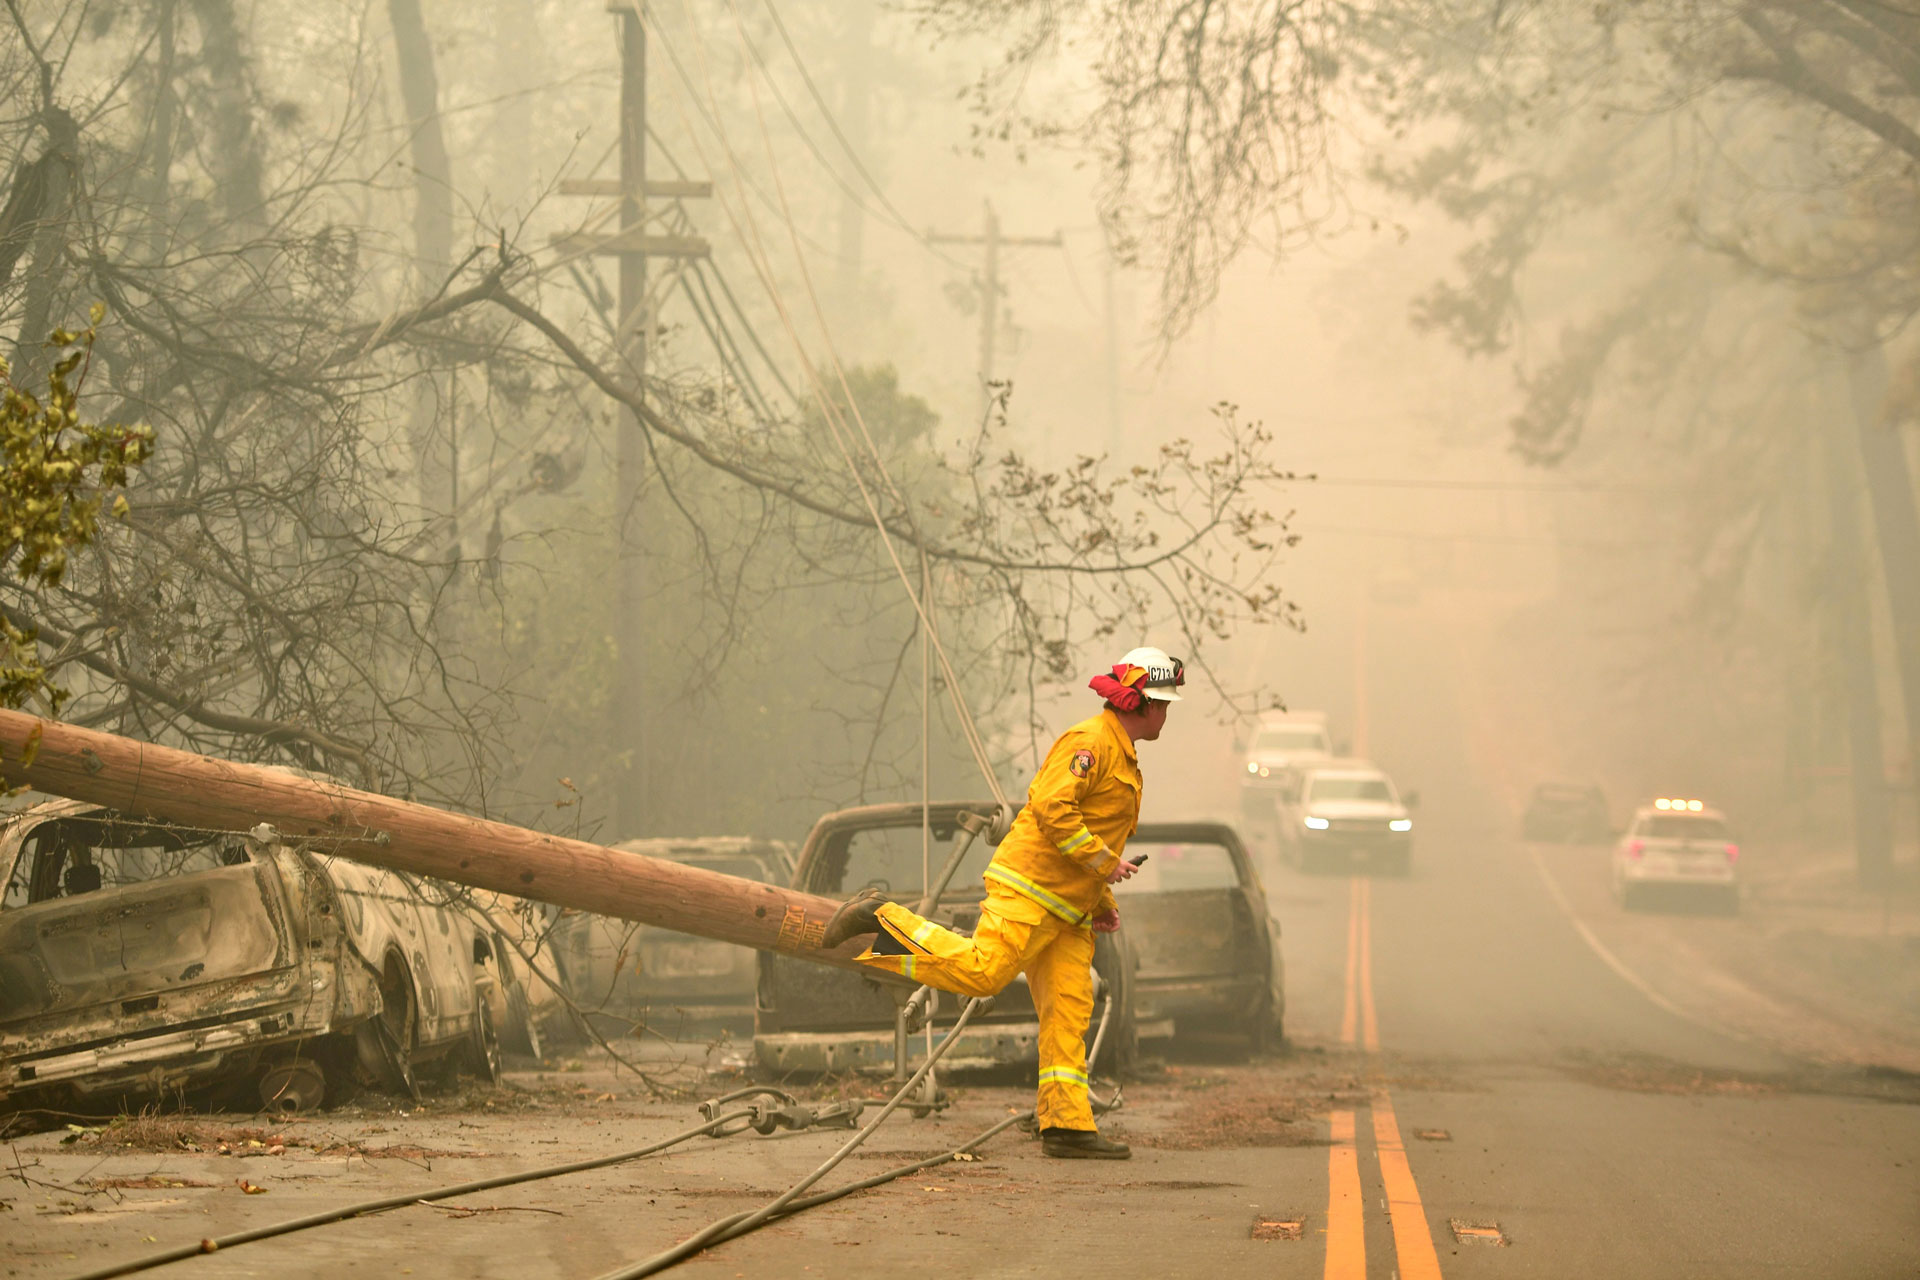 California Senate Passes Controversial Bill to Deal With Utility-Caused Wildfires